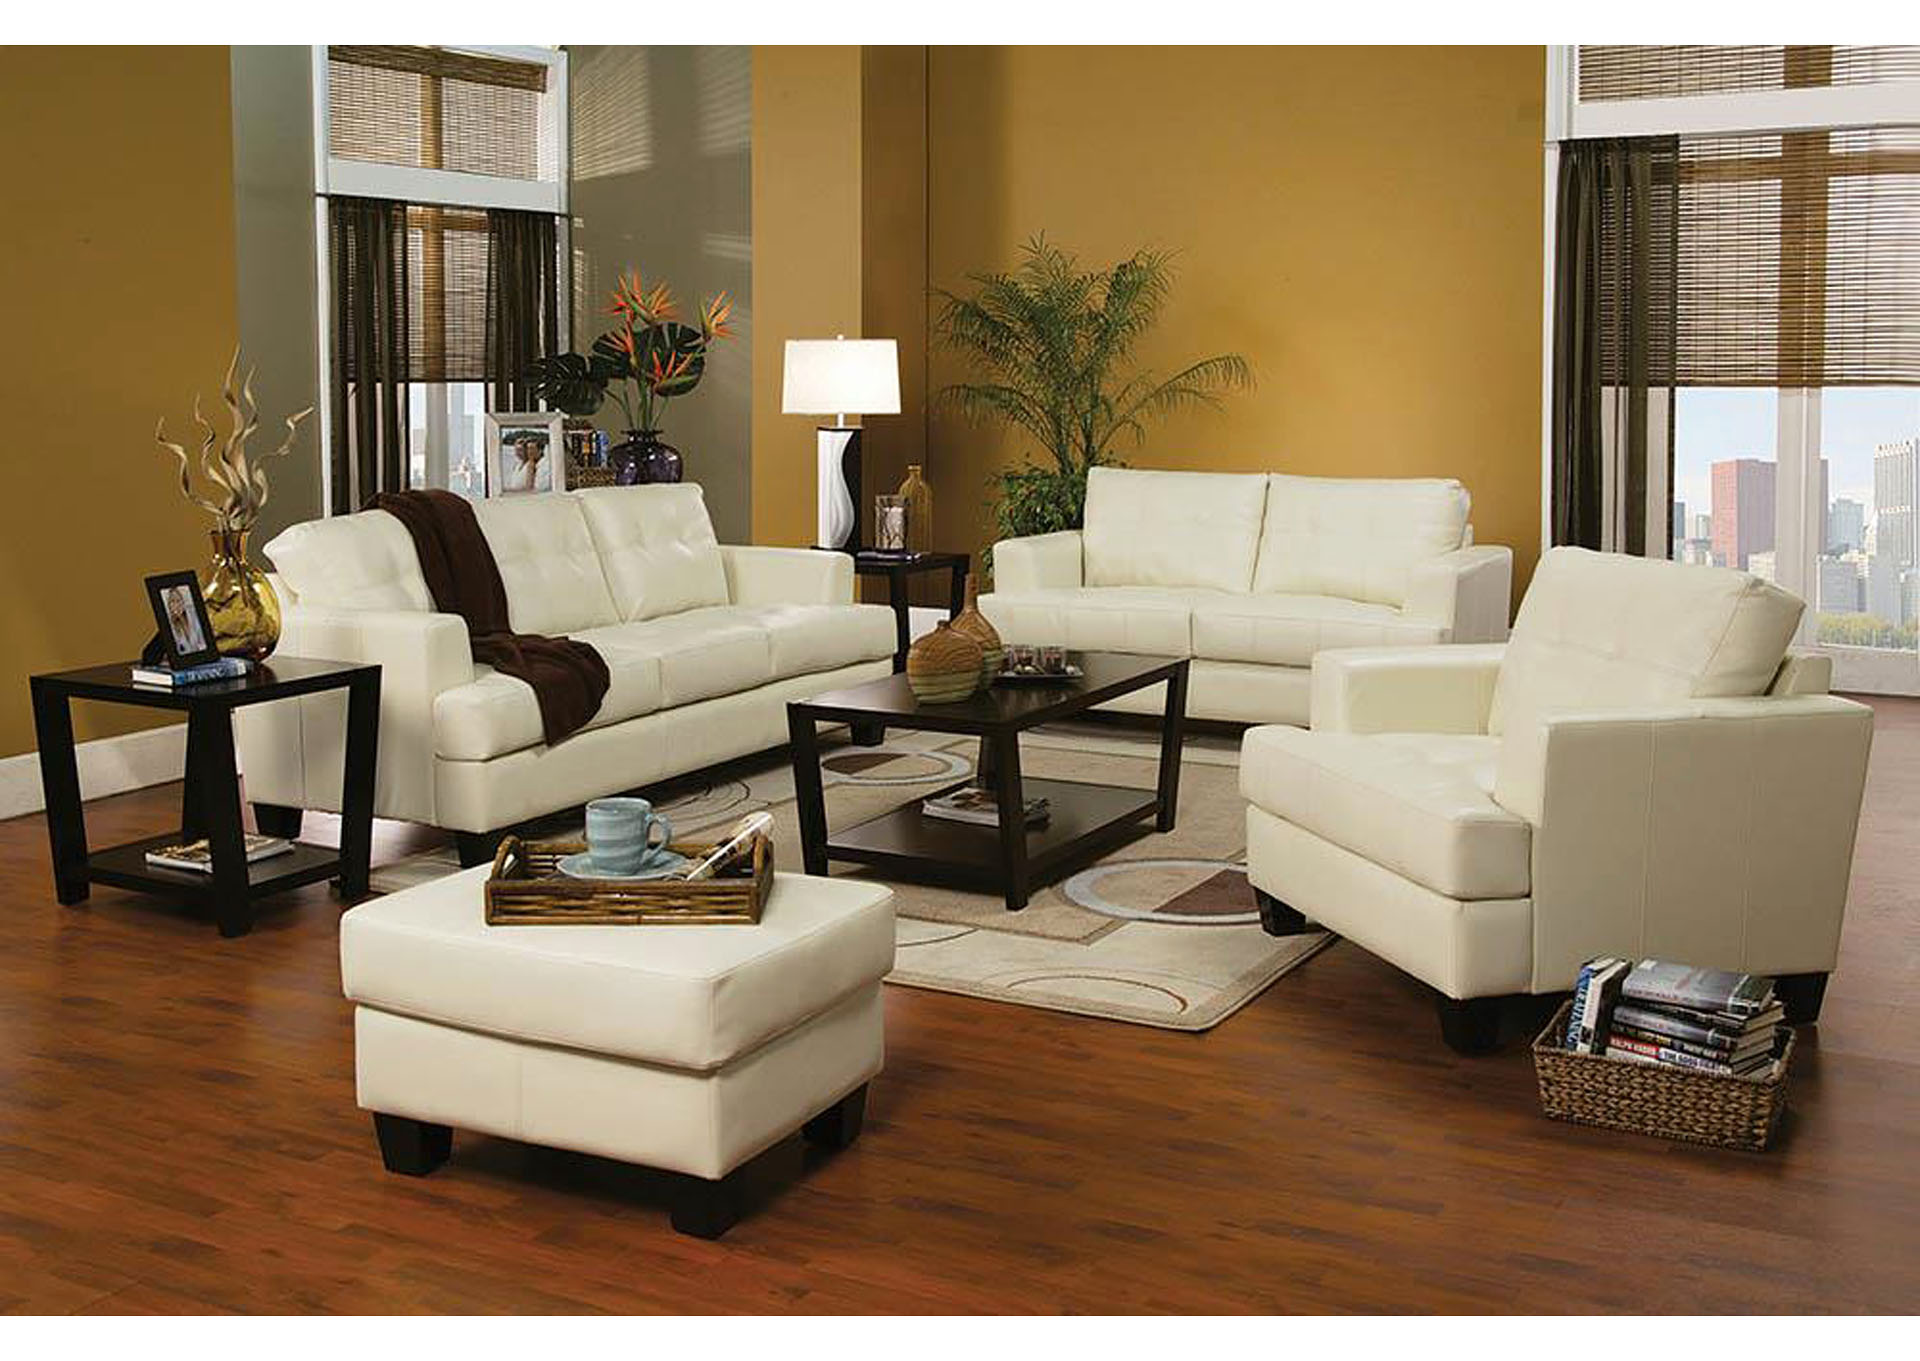 Flax Furniture - Irvington, NJ Samuel Cream Bonded Leather Sofa